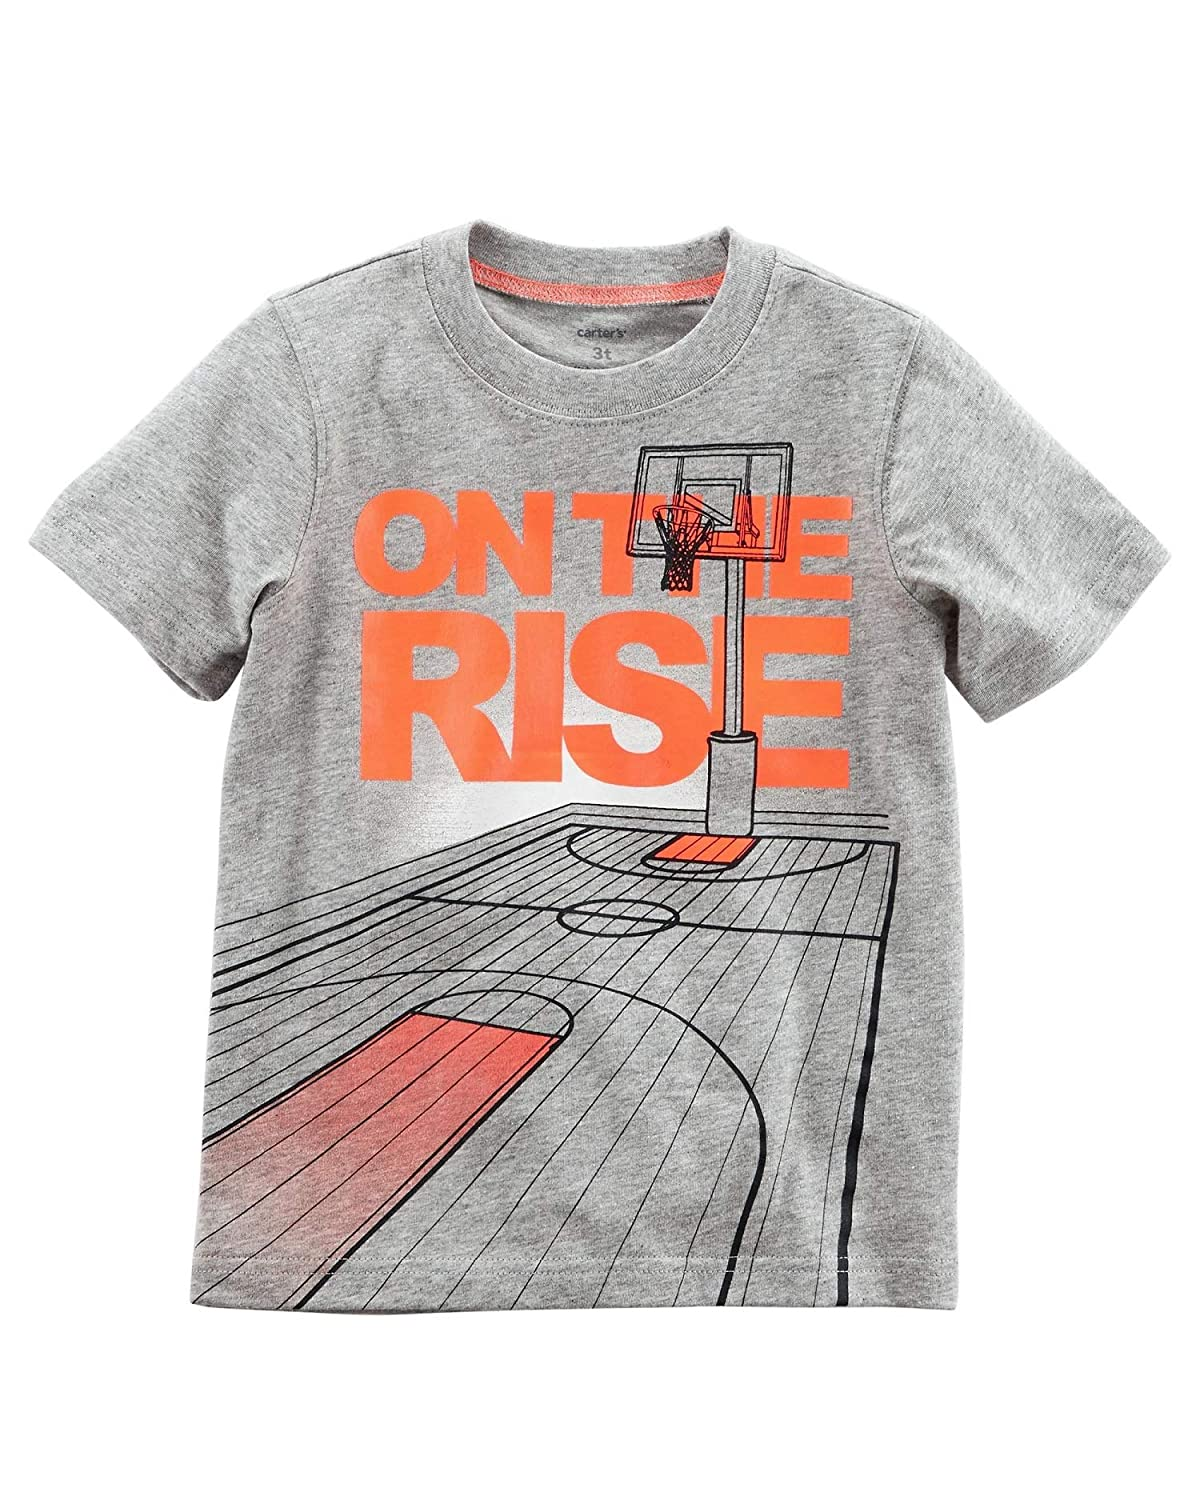 12 Months Gray Carters Baby Boys On The Rise Jersey Tee